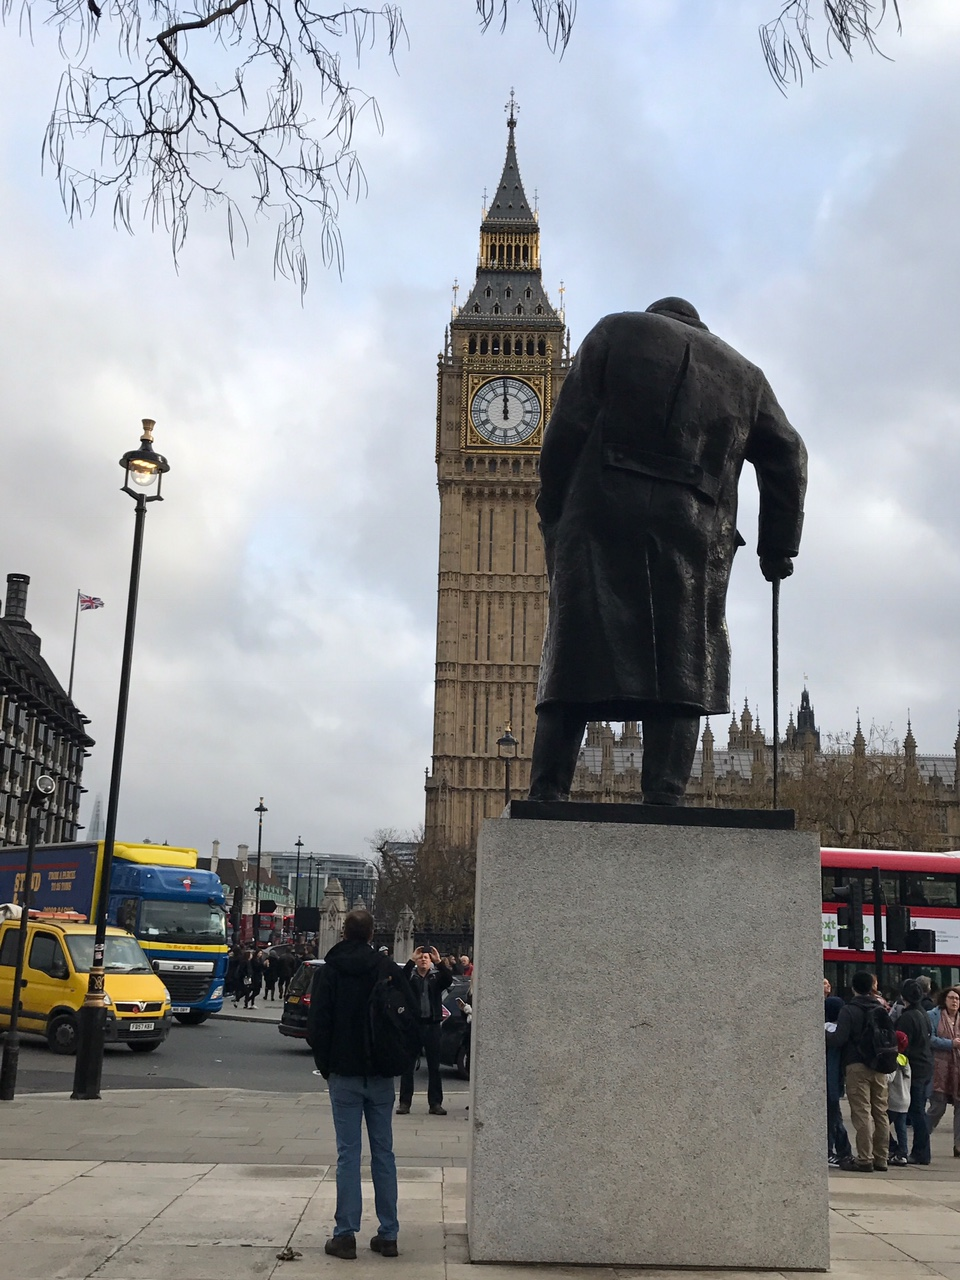 View of Winston Churchill looking at Big Ben